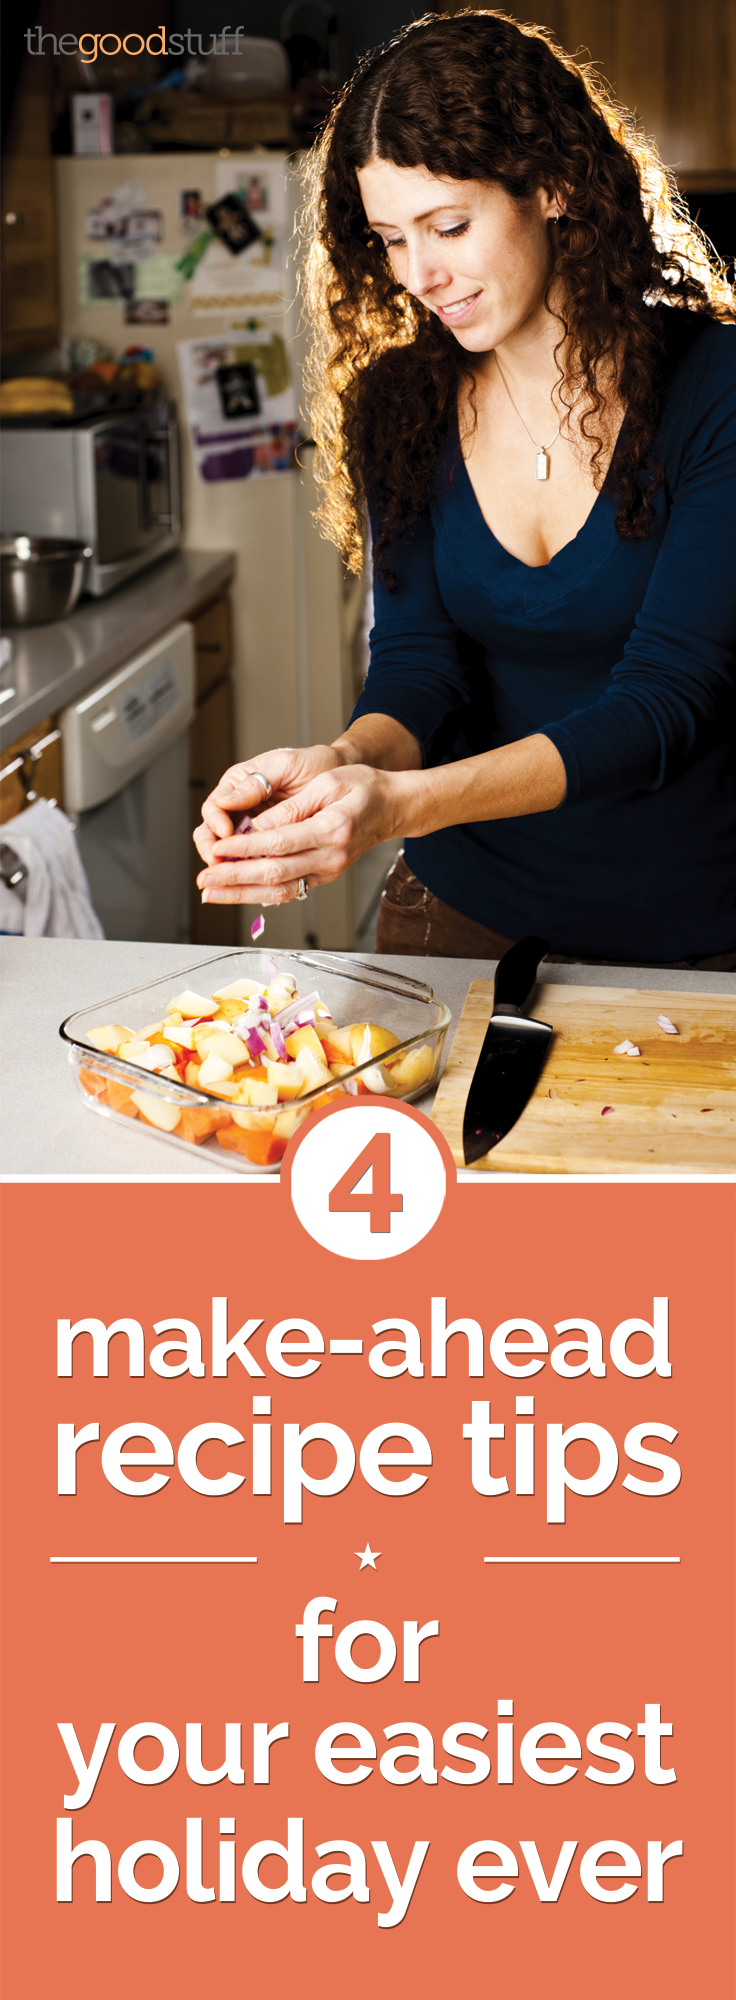 4 Make-Ahead Recipe Tips for Your Easiest Holiday Ever | thegoodstuff